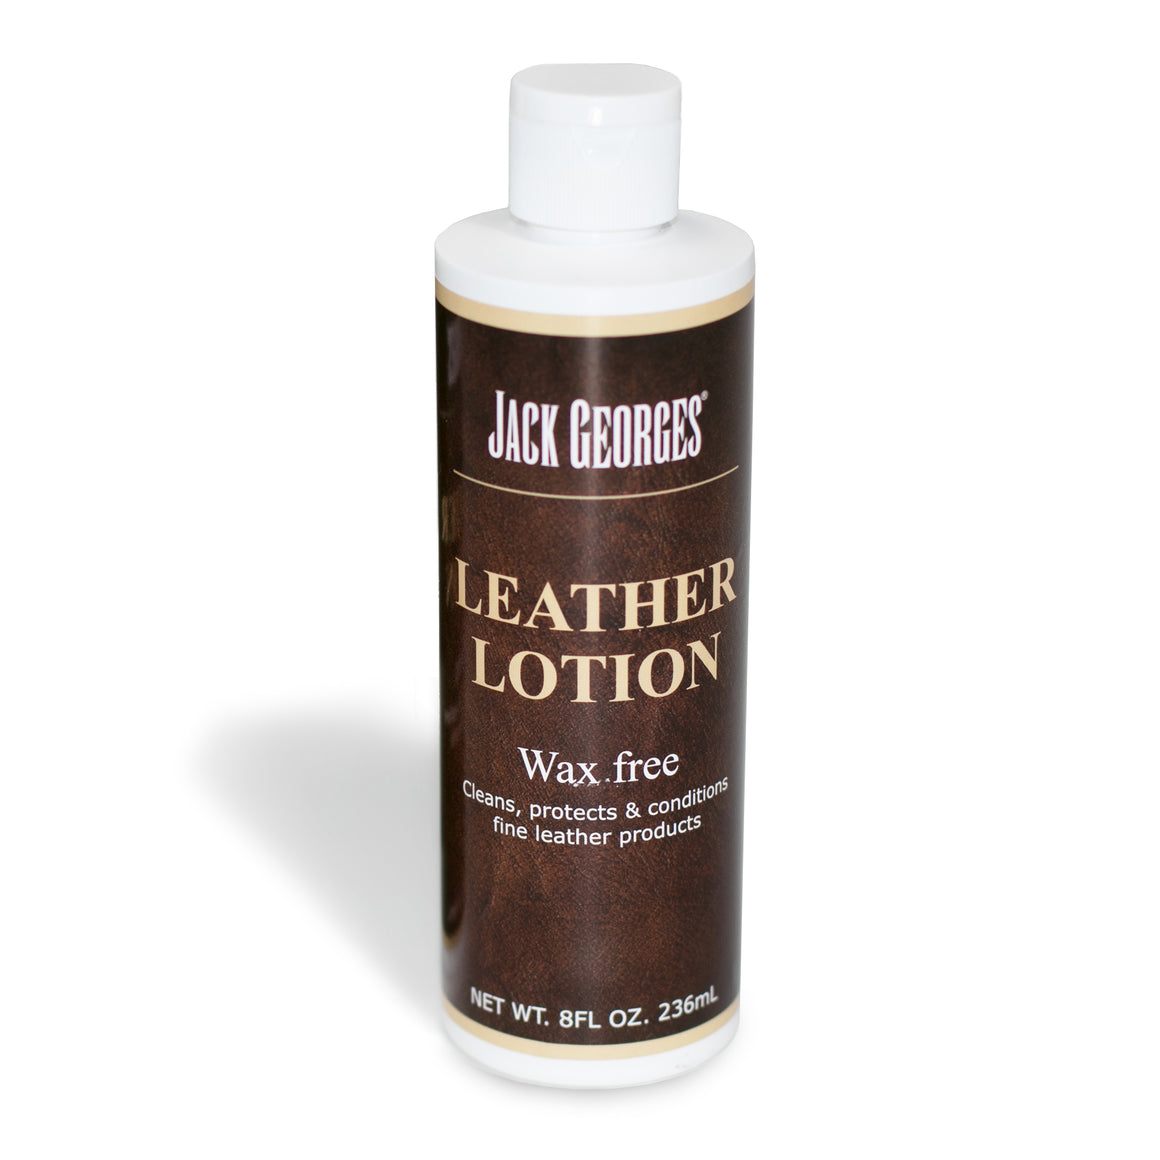 bd86e8d5850bf ... Jack Georges Leather Lotion (One Bottle)